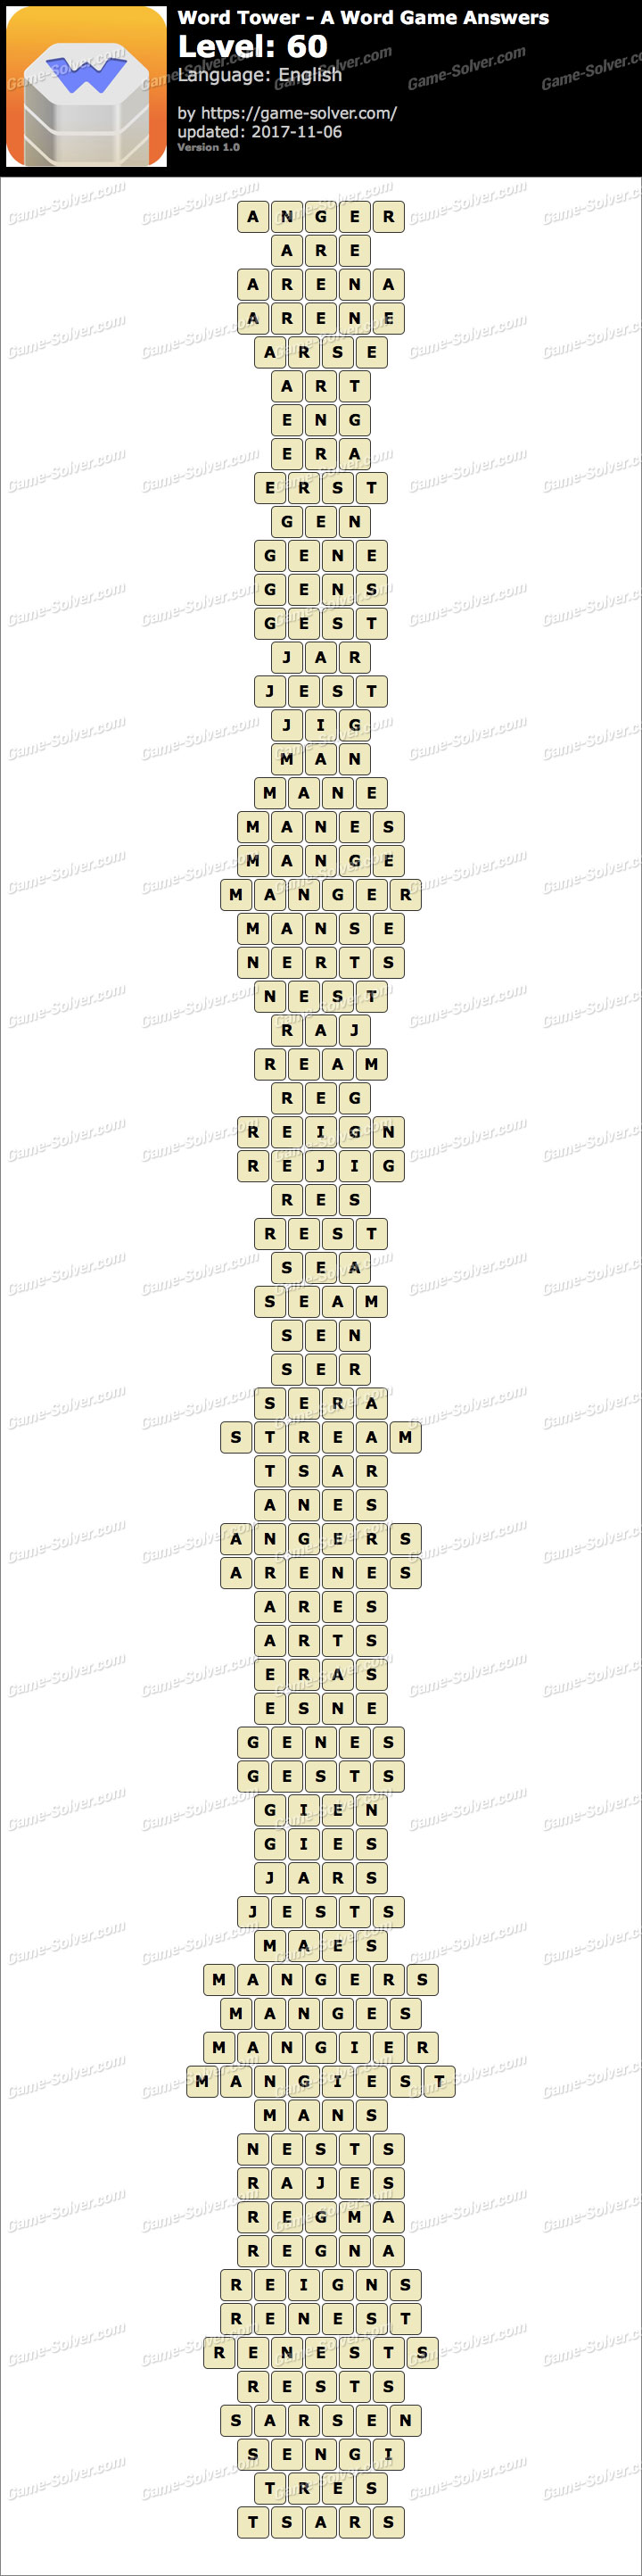 Word Tower Level 60 Answers